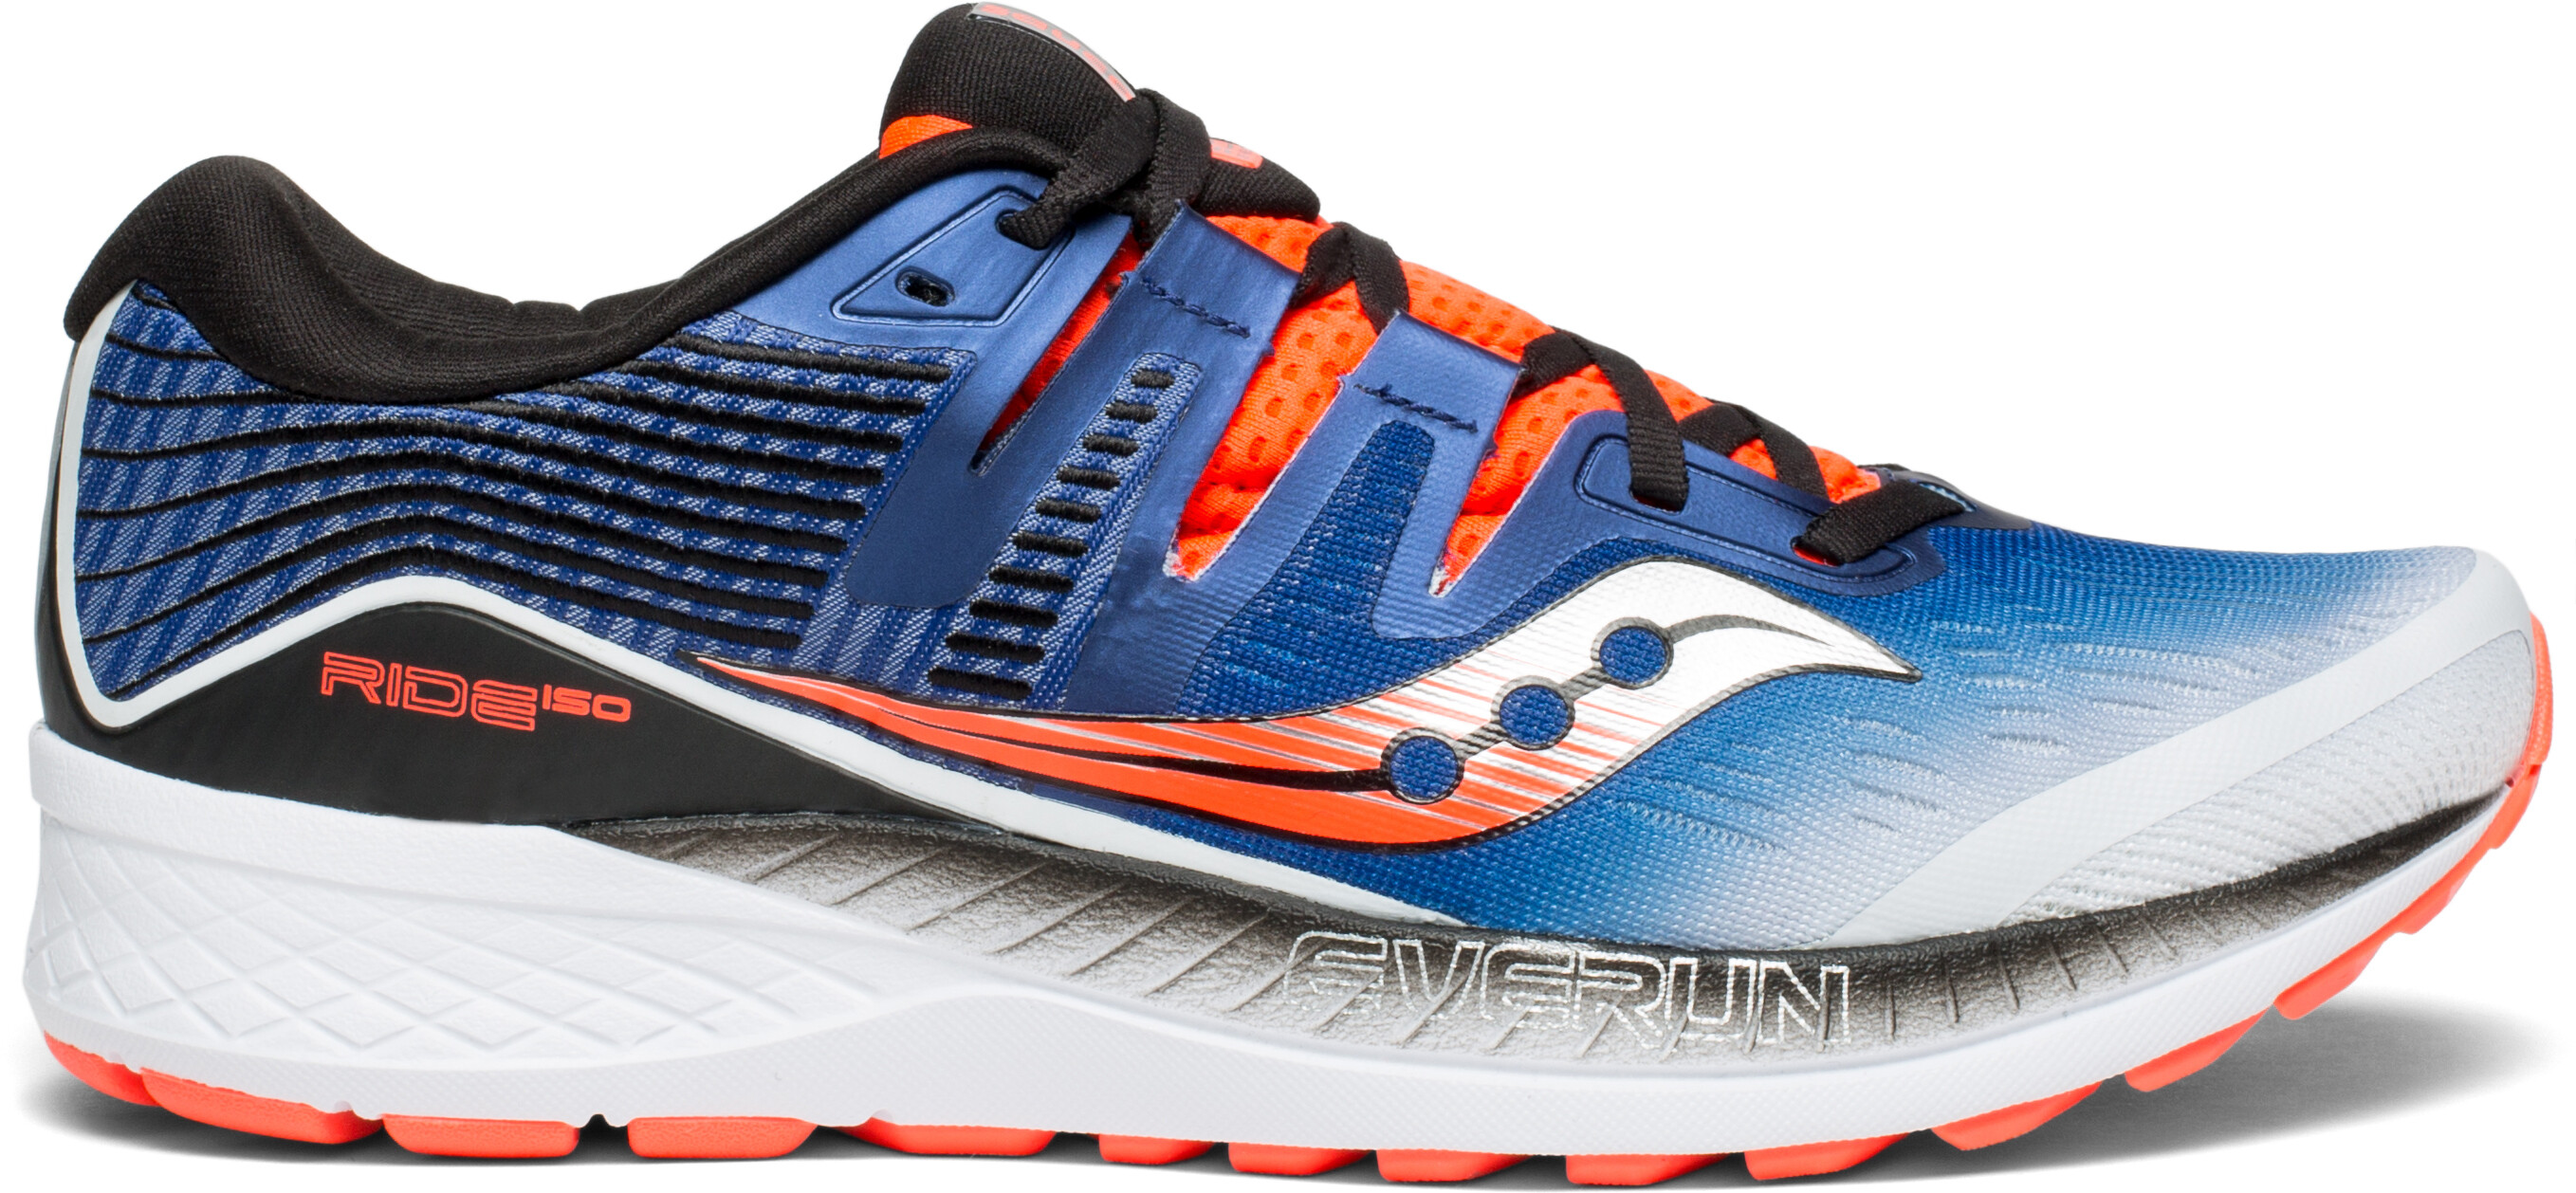 27af811ffe7 saucony Ride ISO - Chaussures running Homme - bleu blanc - Boutique ...